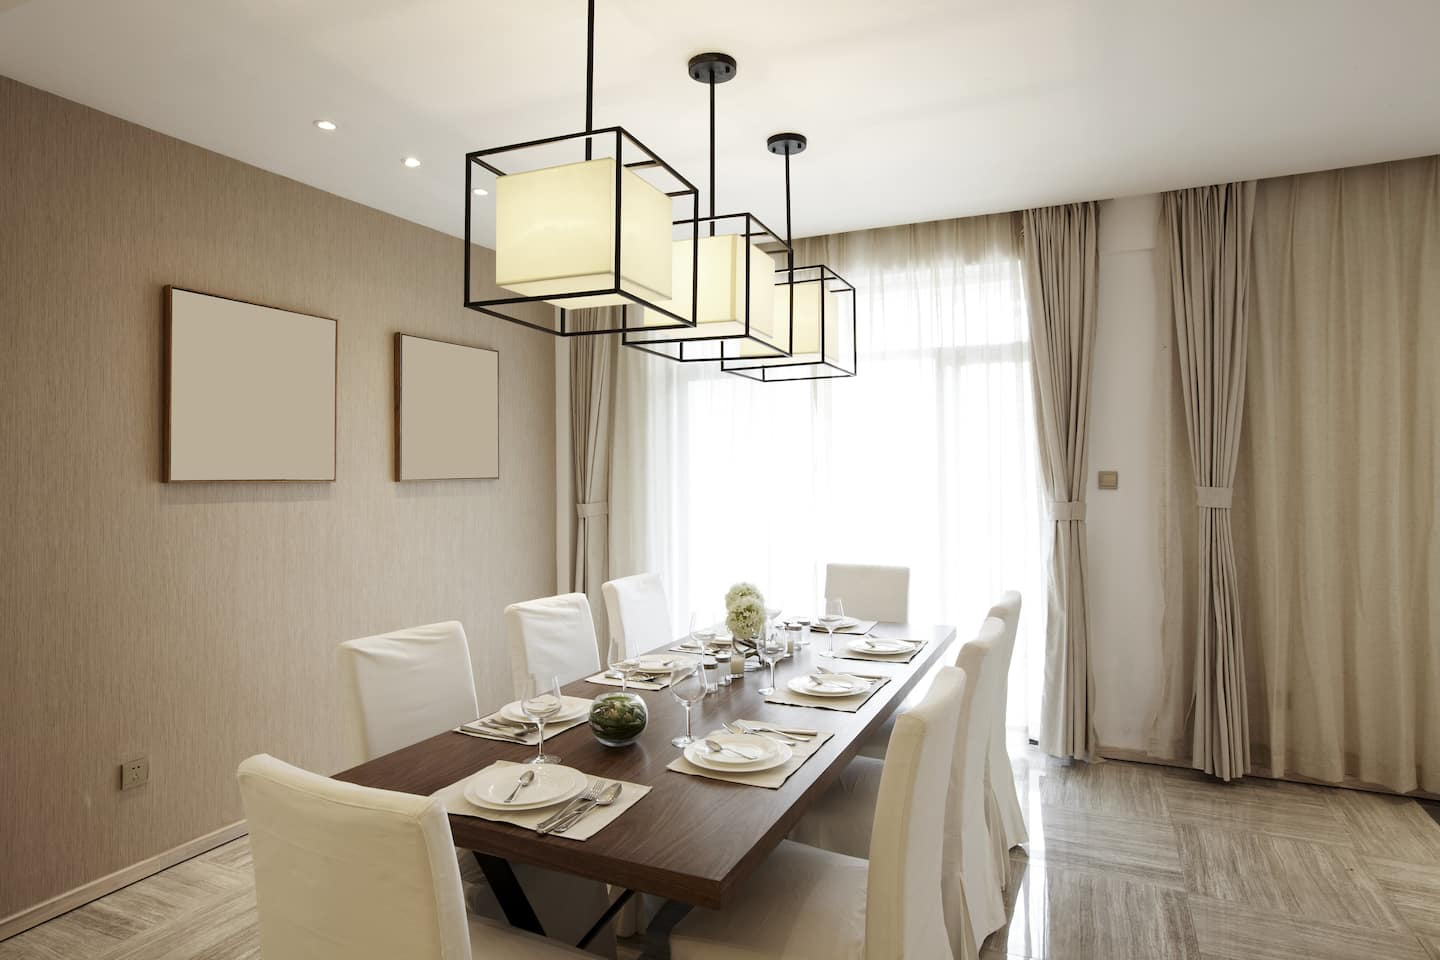 Contemporary Formal Dining Room With Modern Elements, And Off White Drapes  Layered Over Sheer